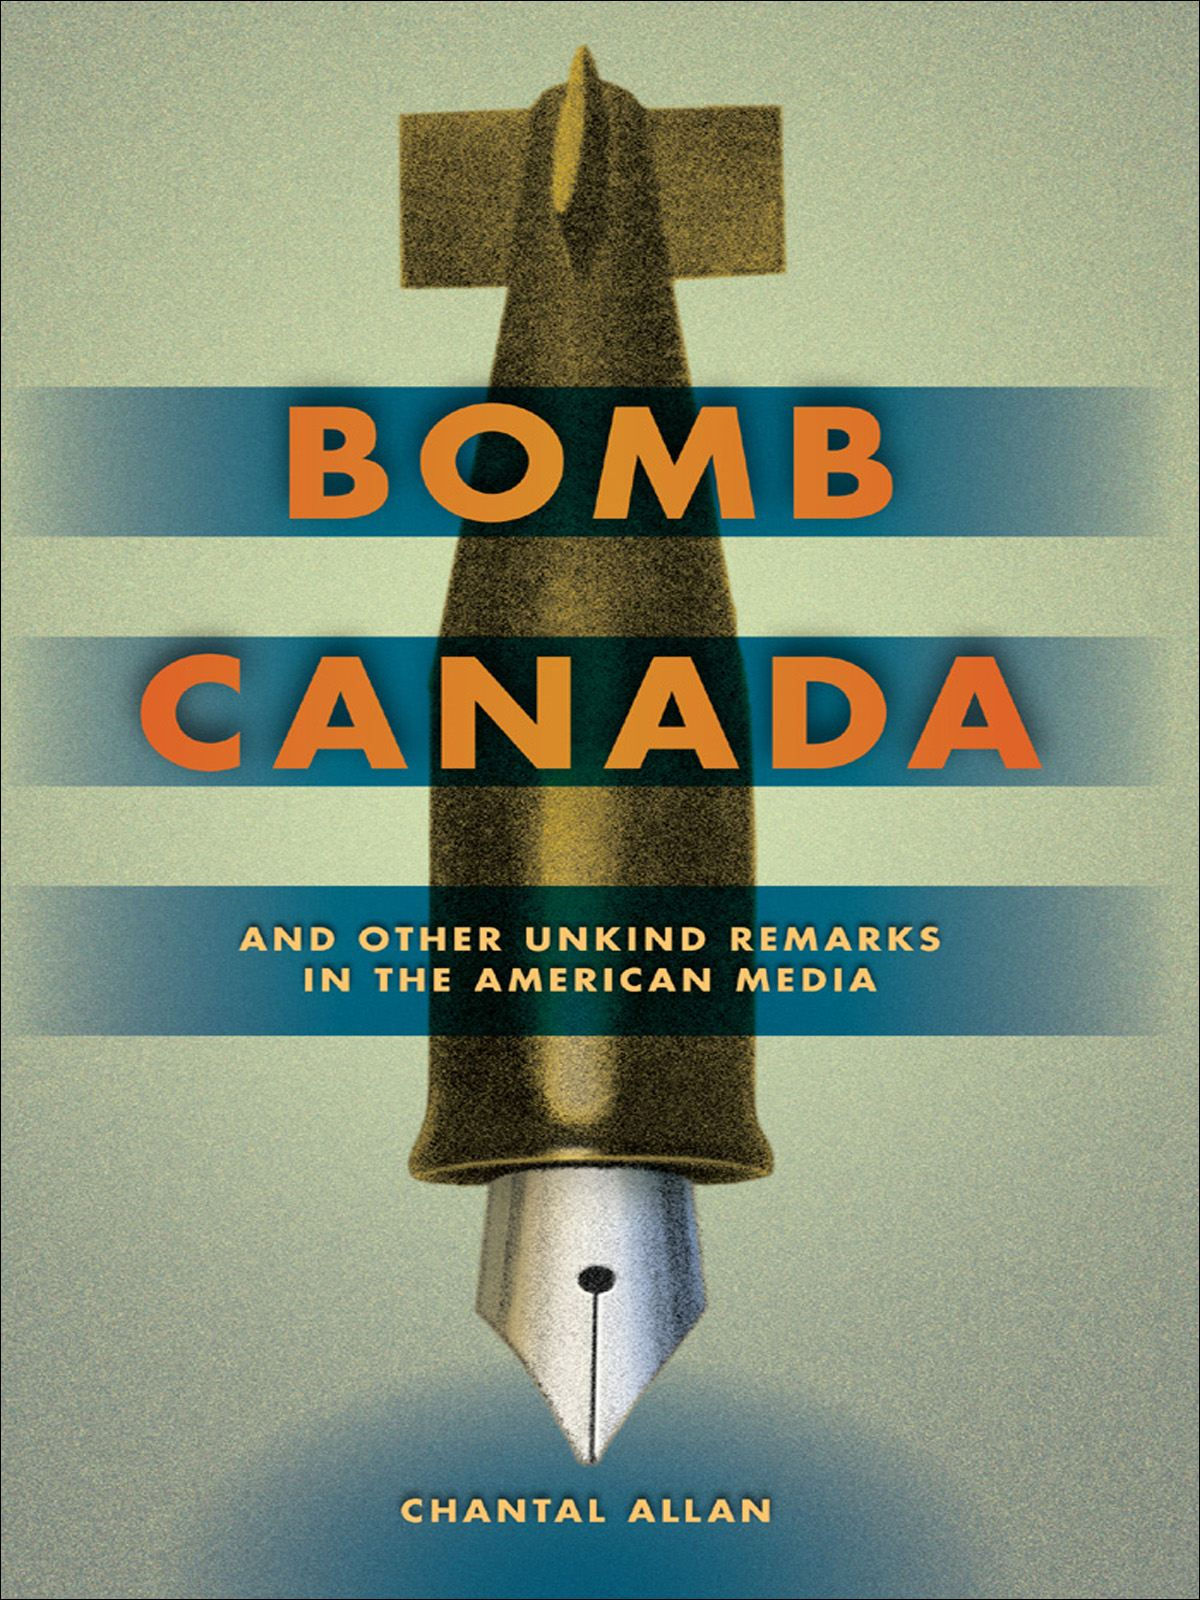 BOMB CANADA : And Other Unkind Remarks in the American Media